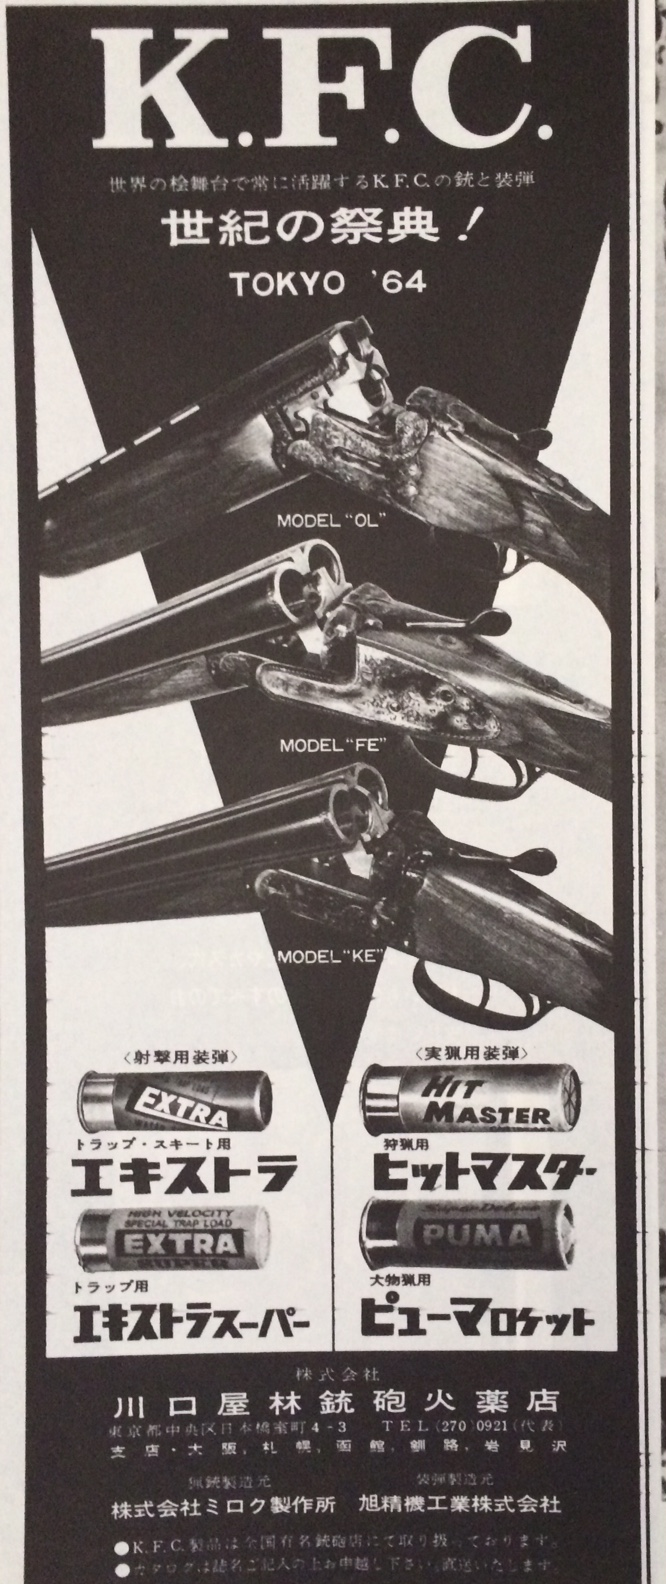 KFC rifle advertisement